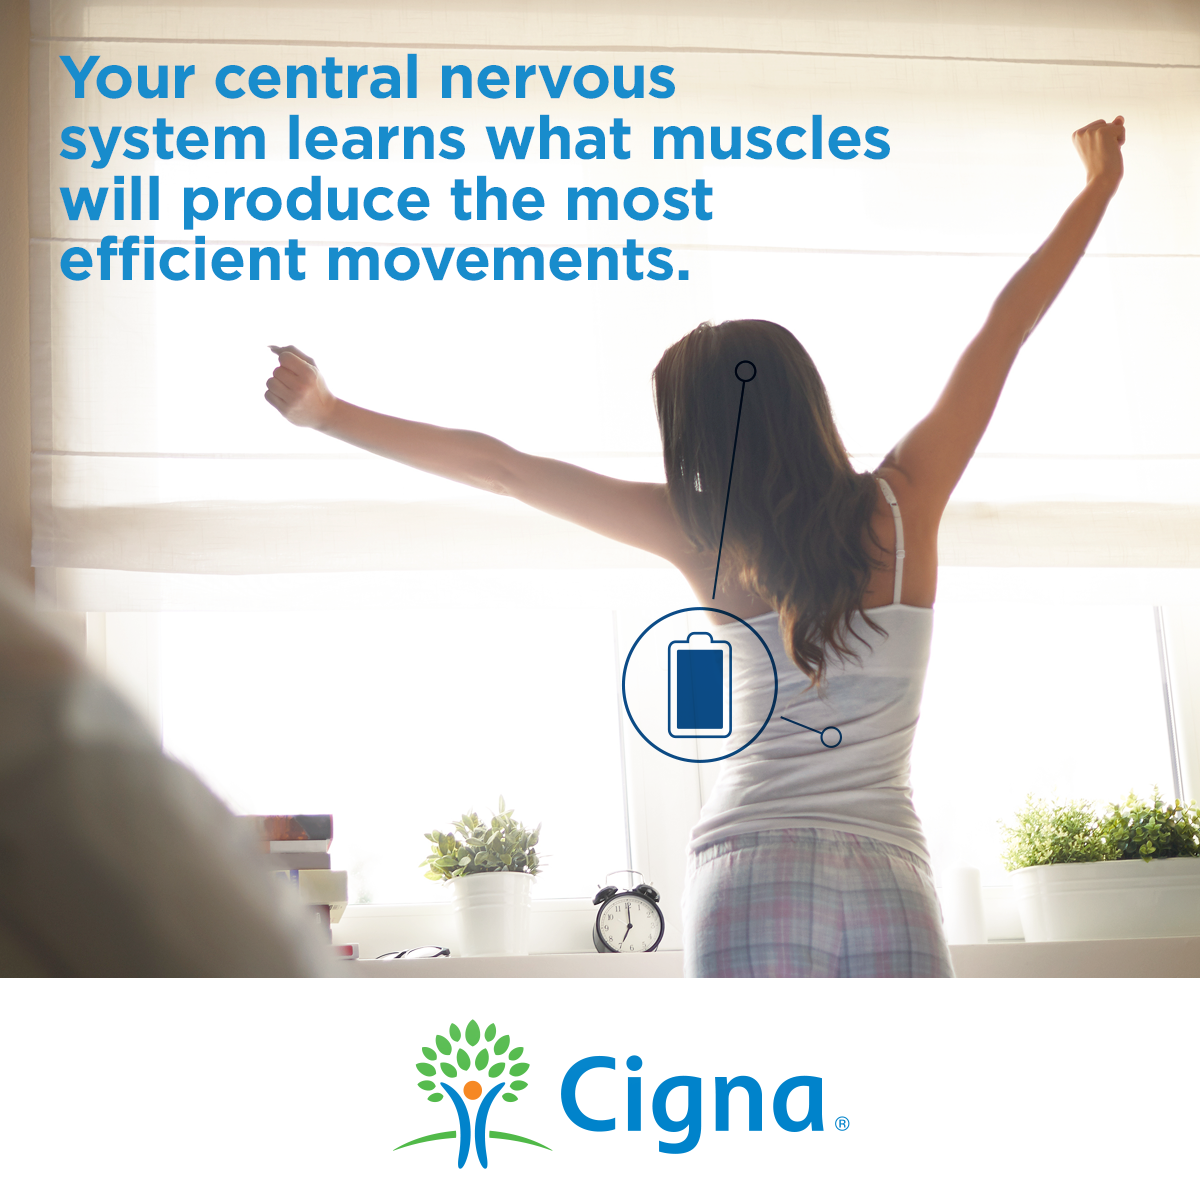 cigna-run-together-recovery